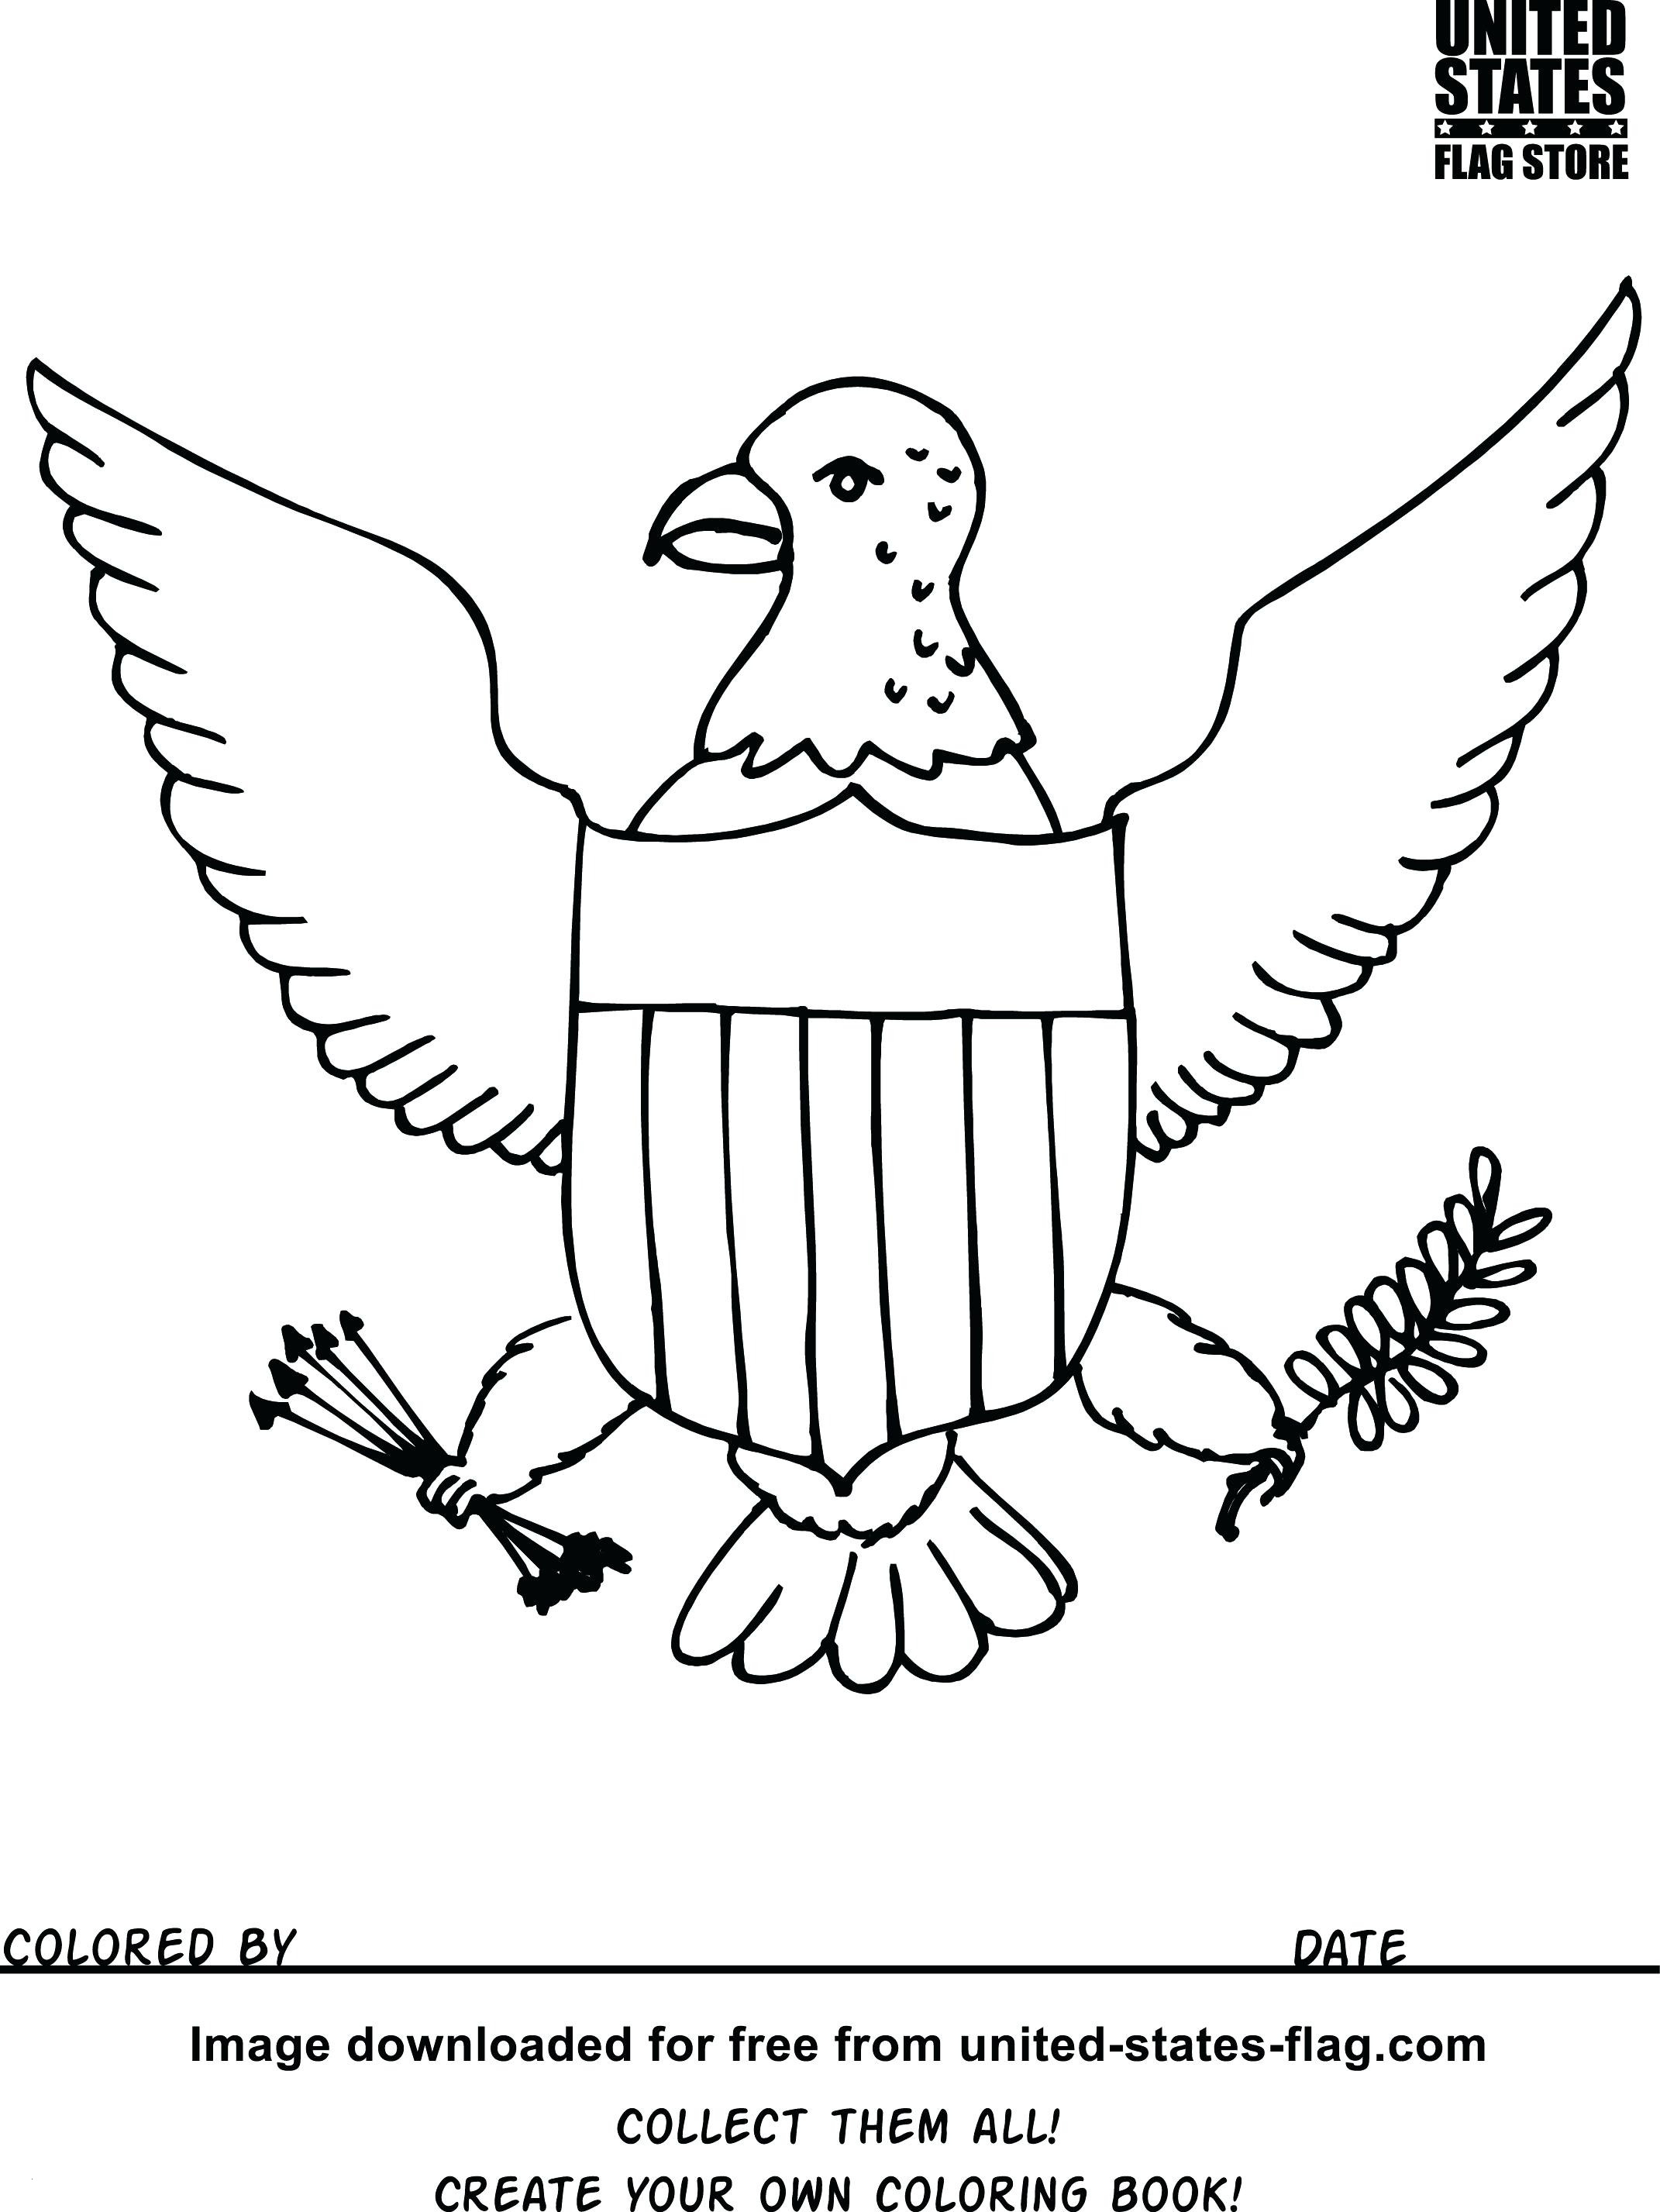 Puerto Rico Coloring Pages  Collection 3n - Save it to your computer